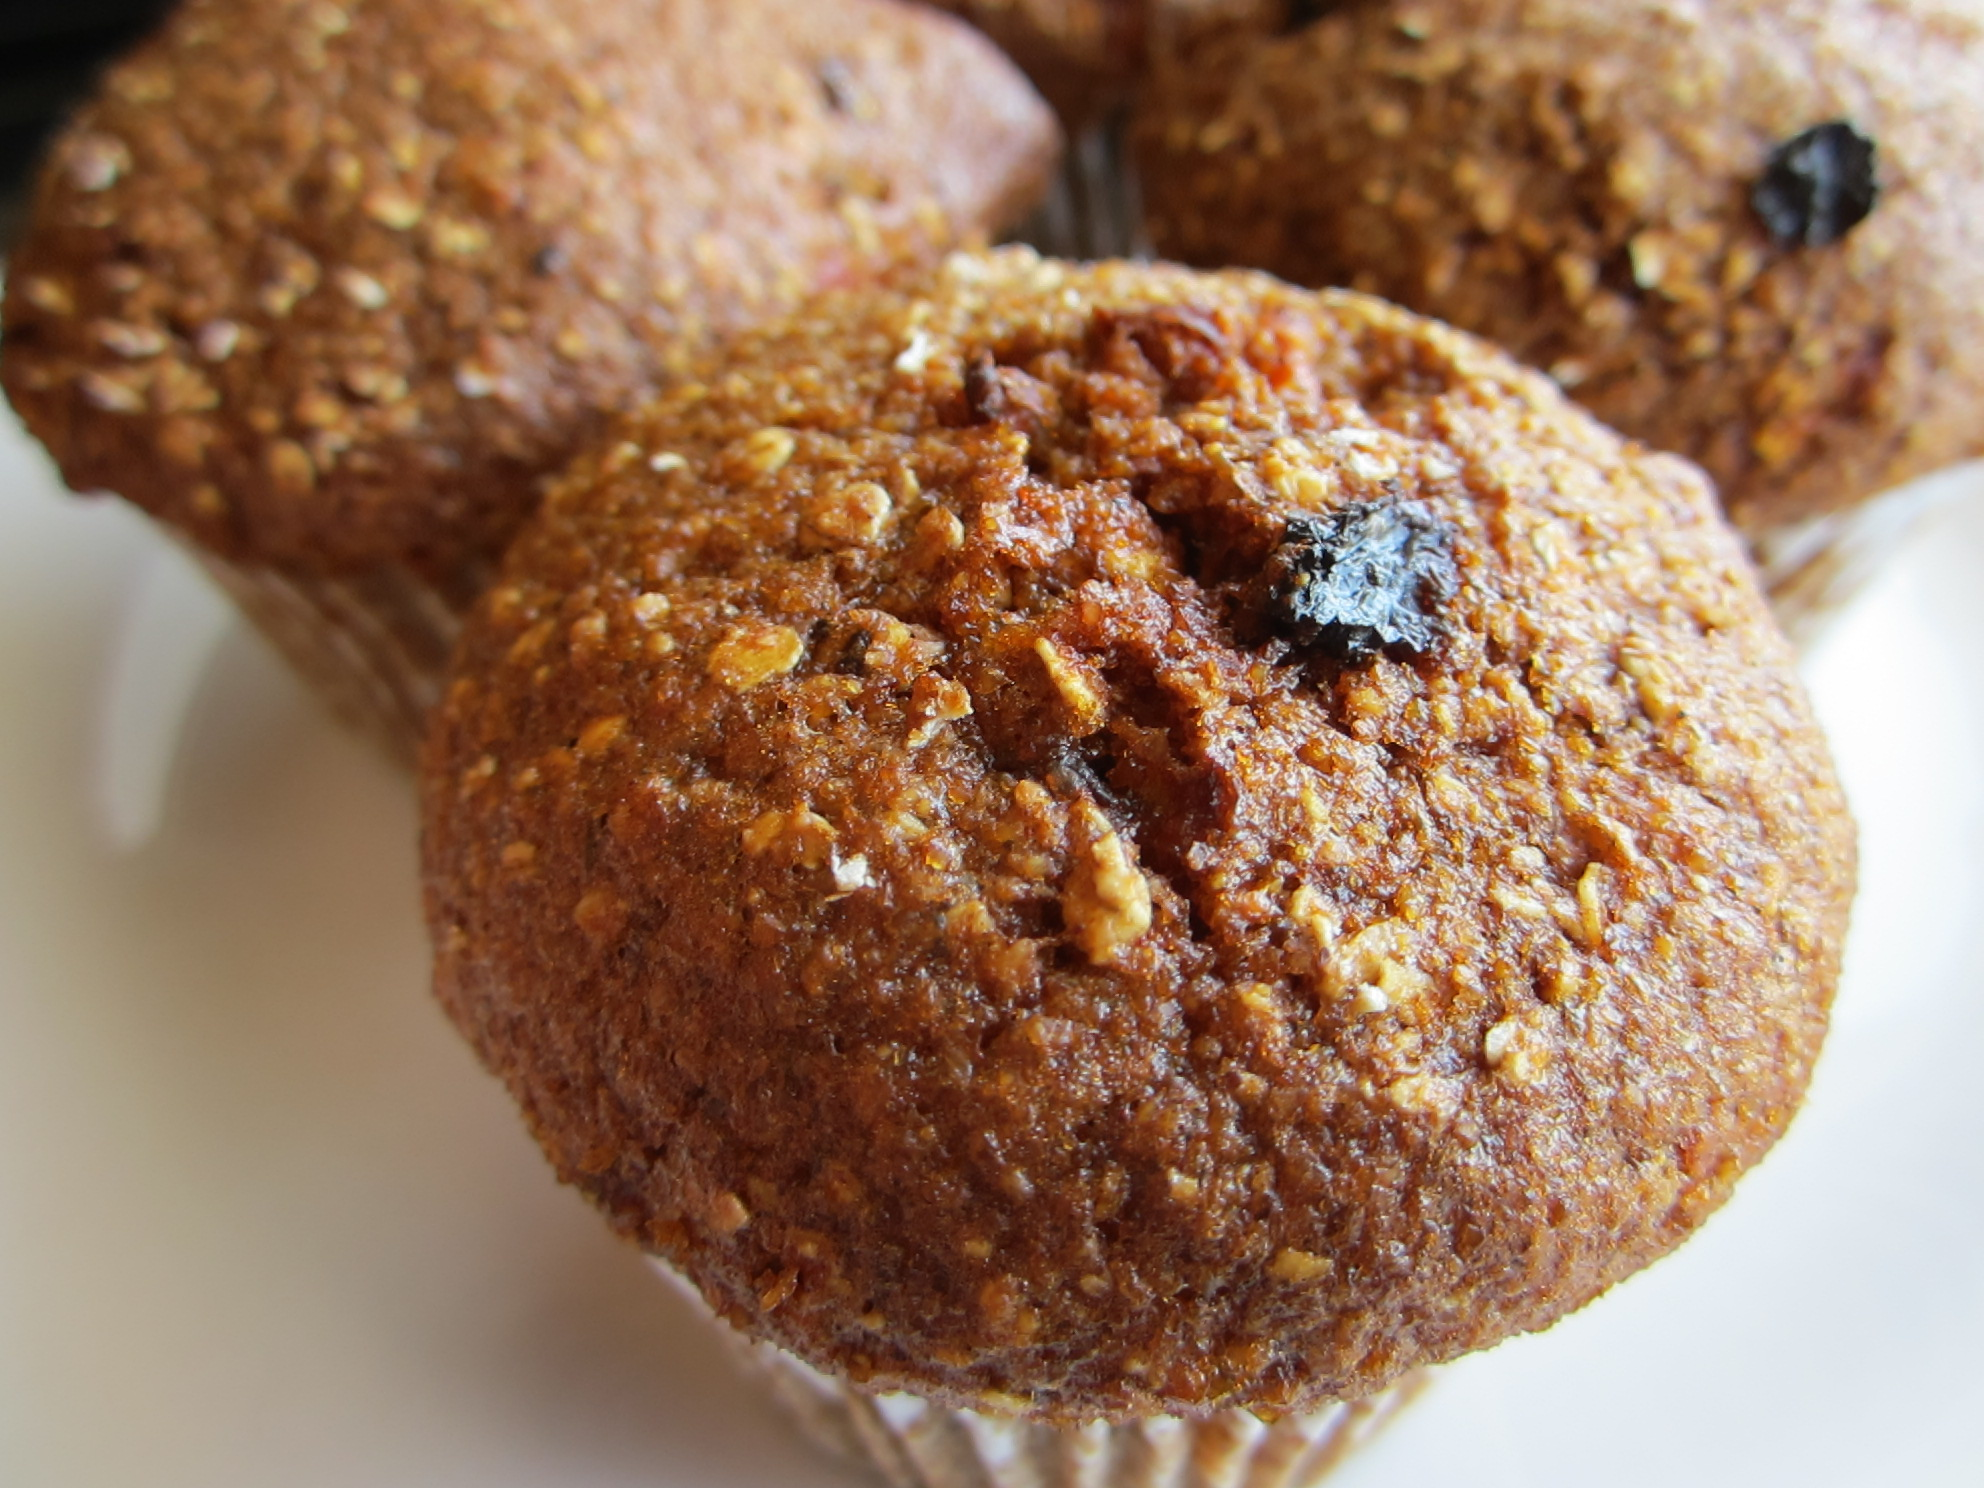 Carrot Apple Raisin Muffins - Gluten-free, dairy-free 2